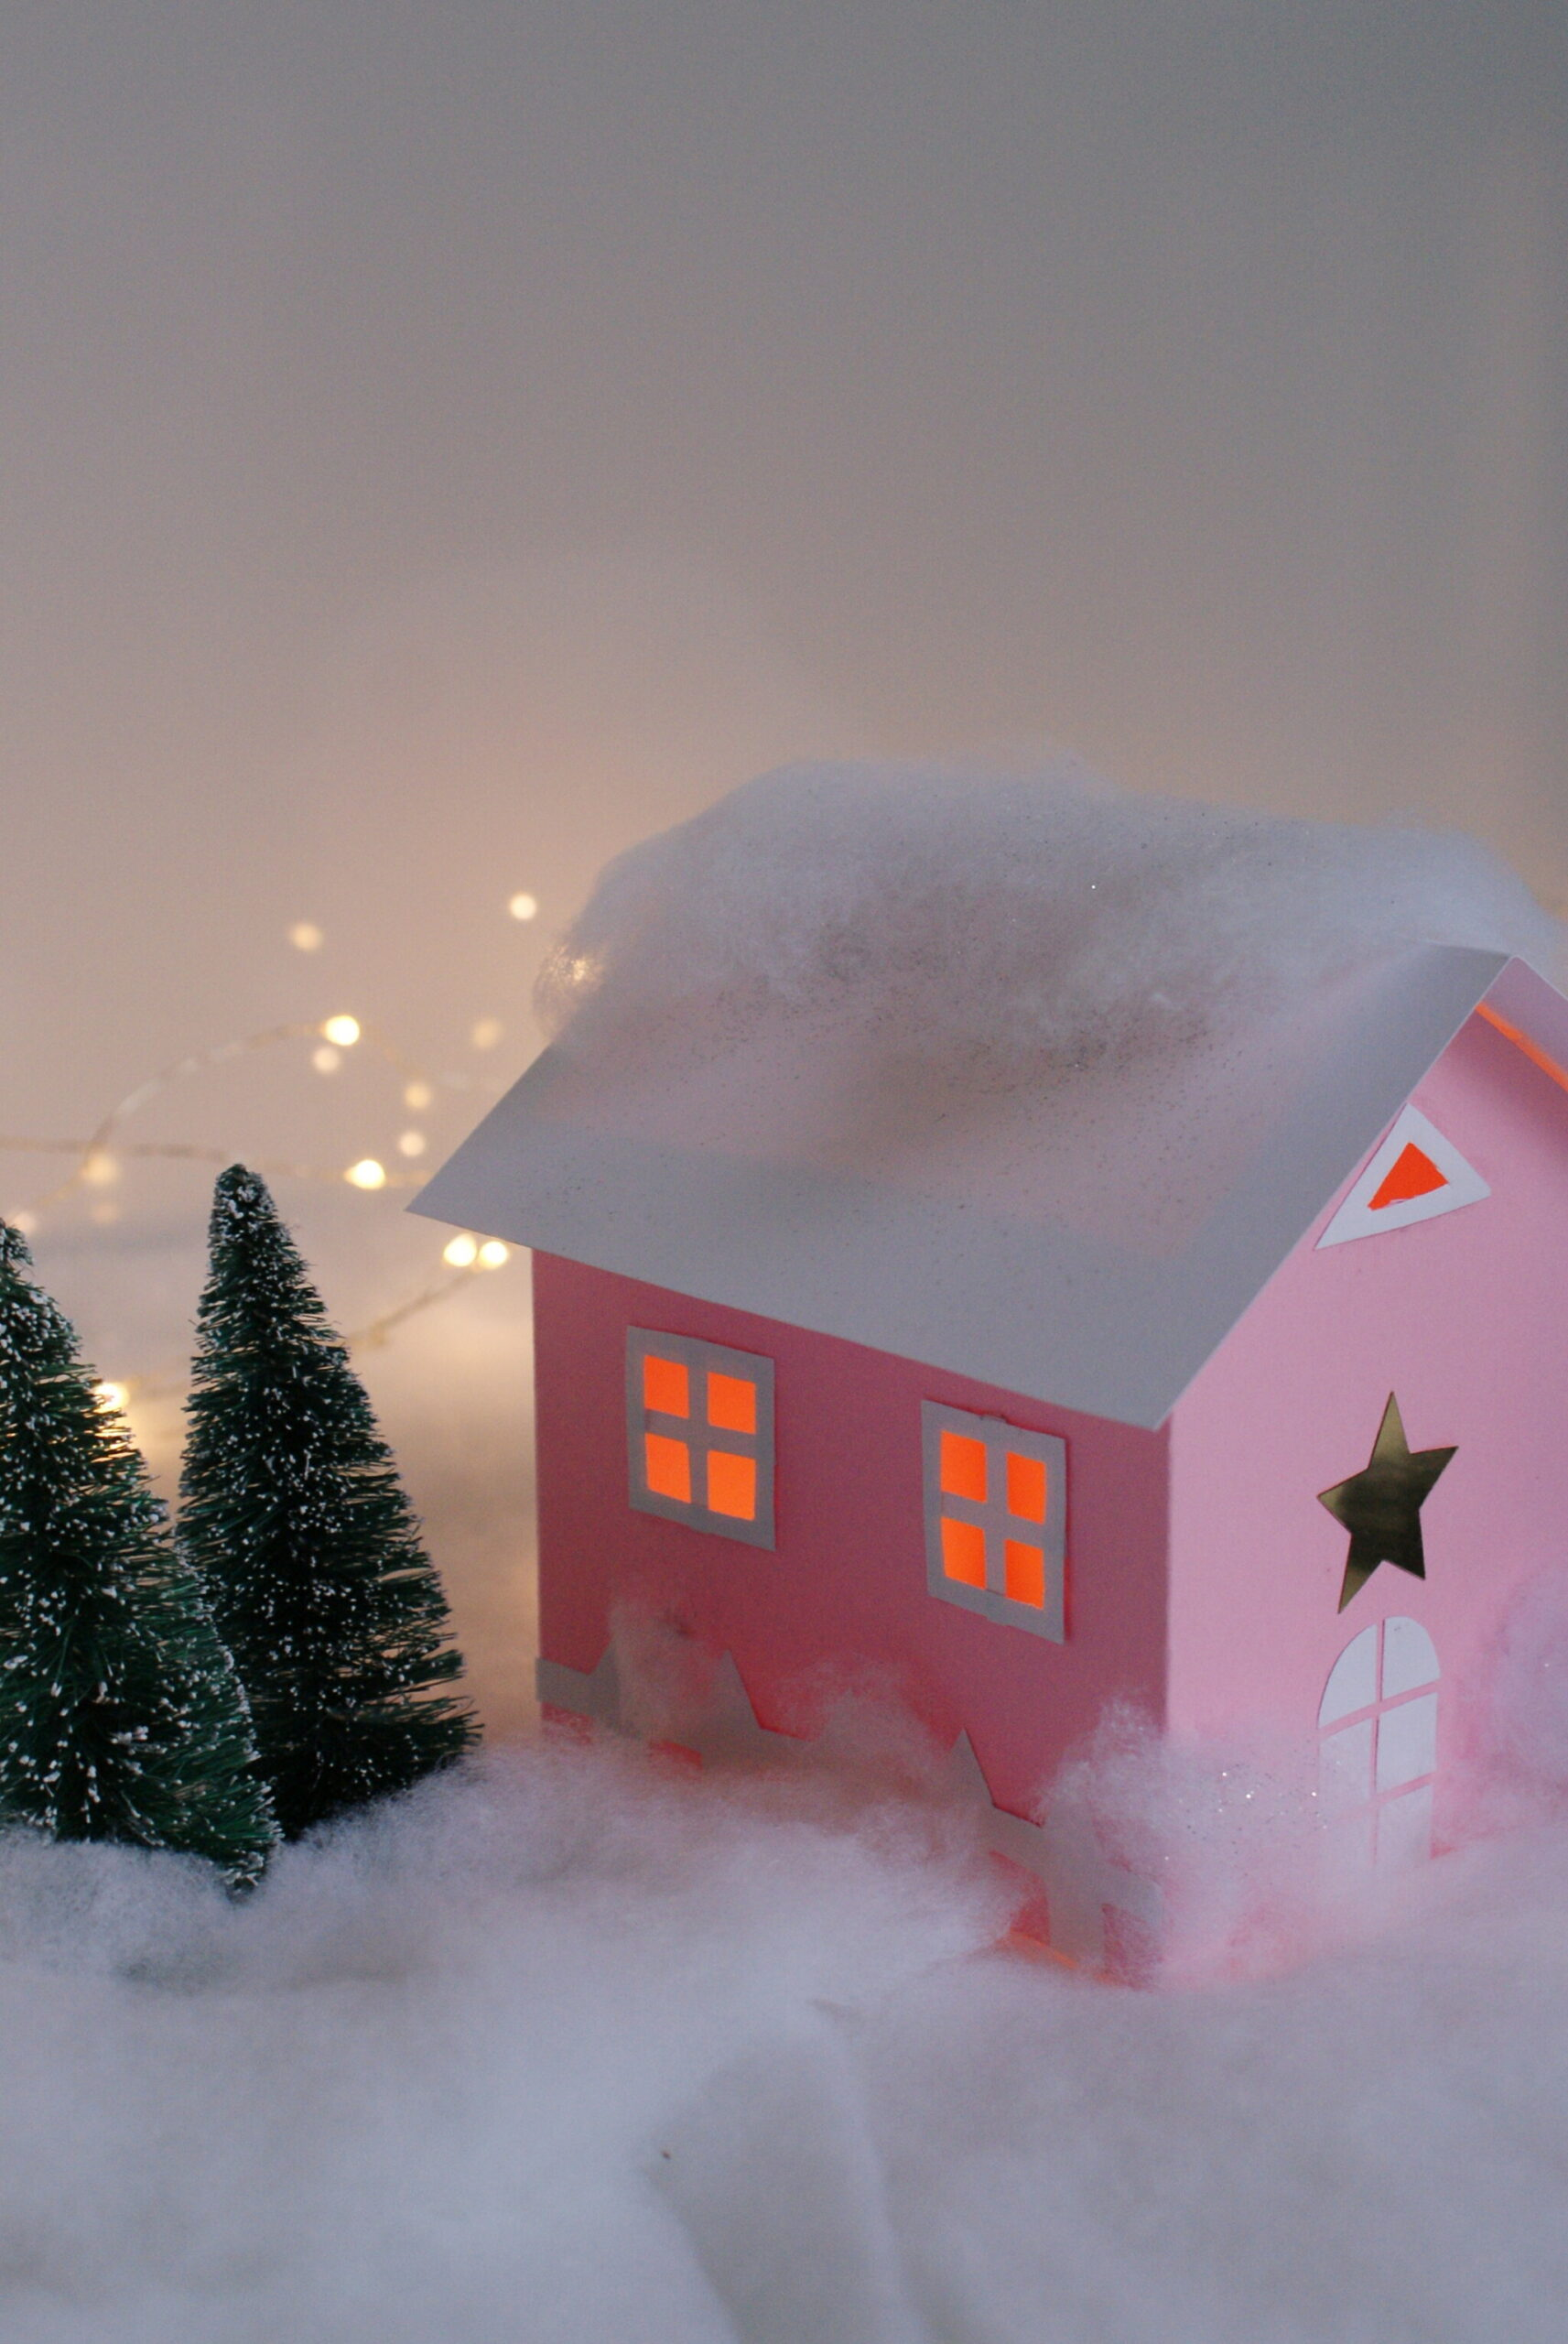 diy paper house christmas winter scene village craft idea decor home easy tutorial glitter fairy template